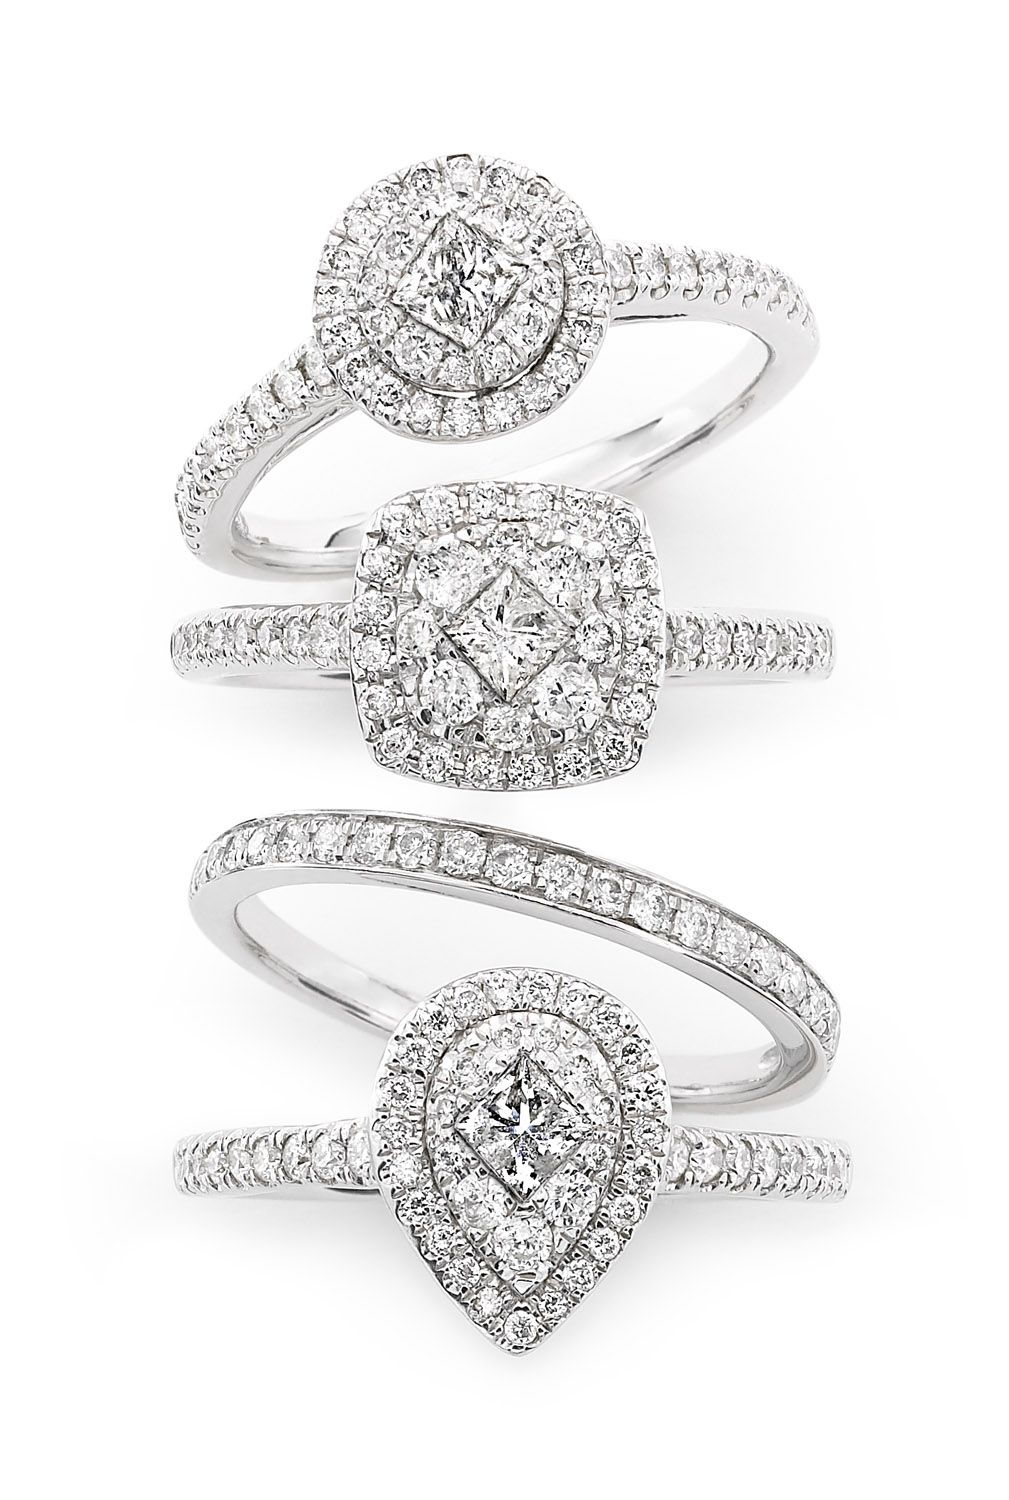 the start of something great – nicole by @Nicole Miller diamond ...